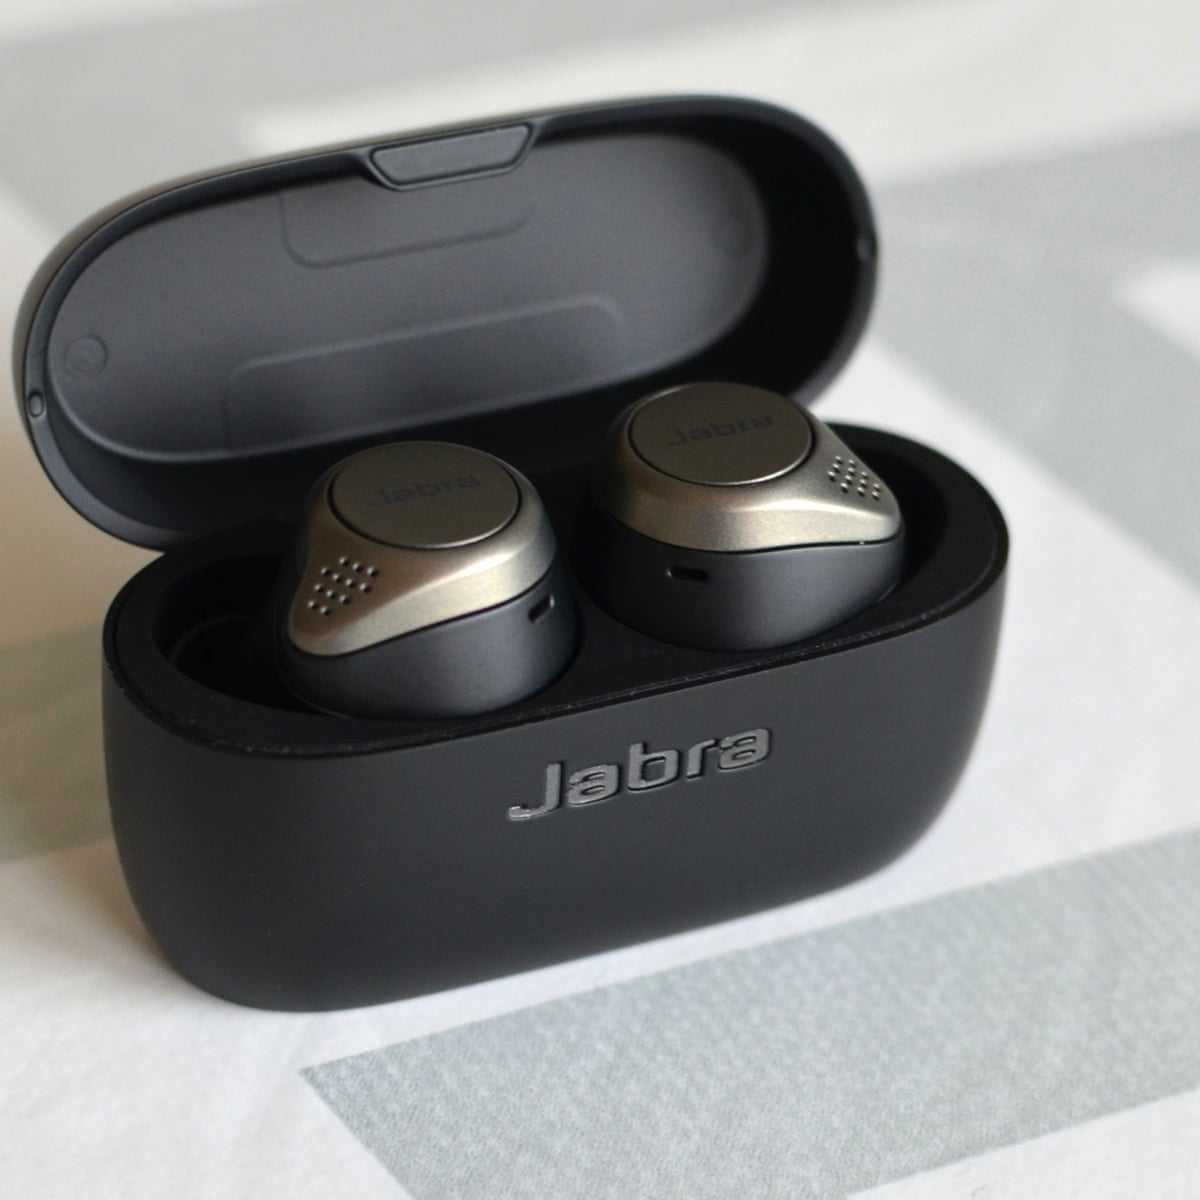 Jabra Elite 75t Review Small And Long Lasting Airpod Beaters Headphones The Guardian